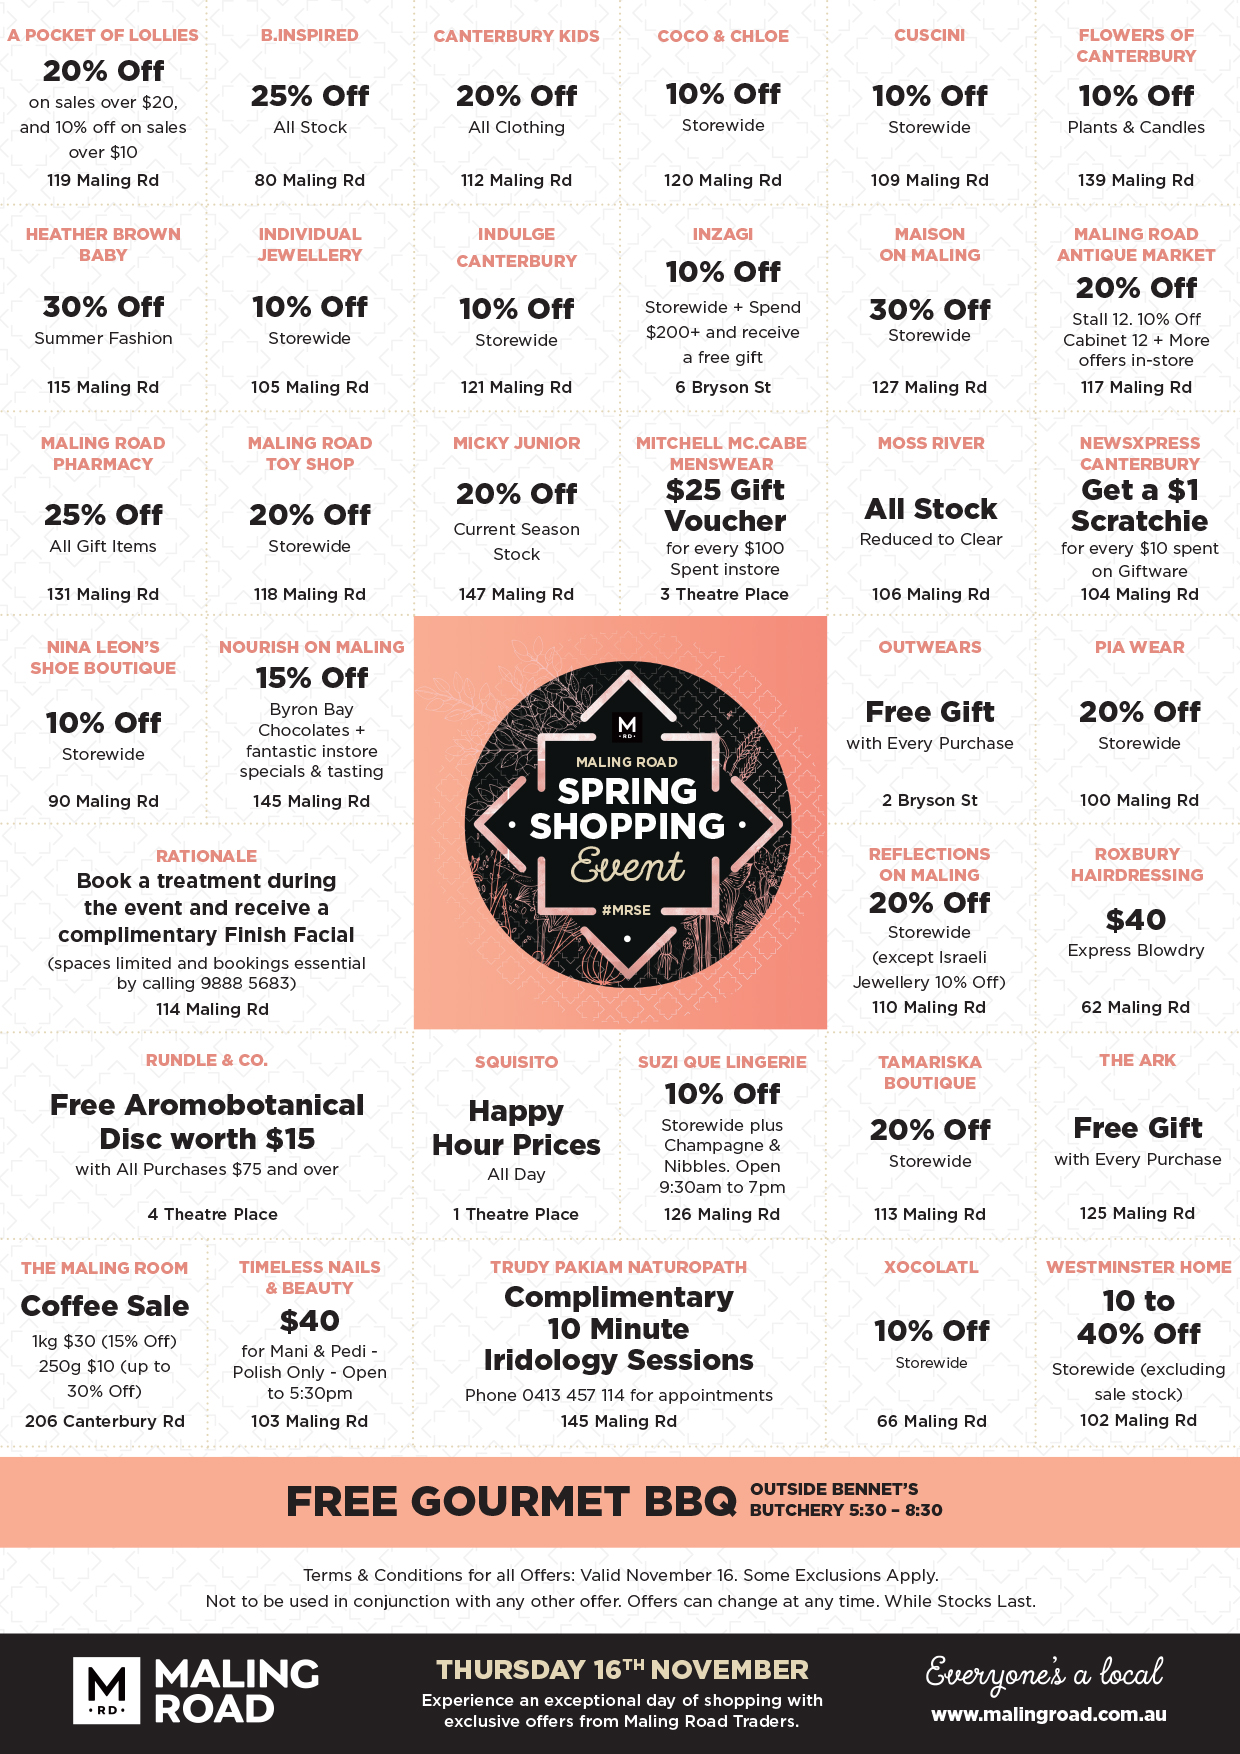 Maling Road Spring Shopping Event Offers